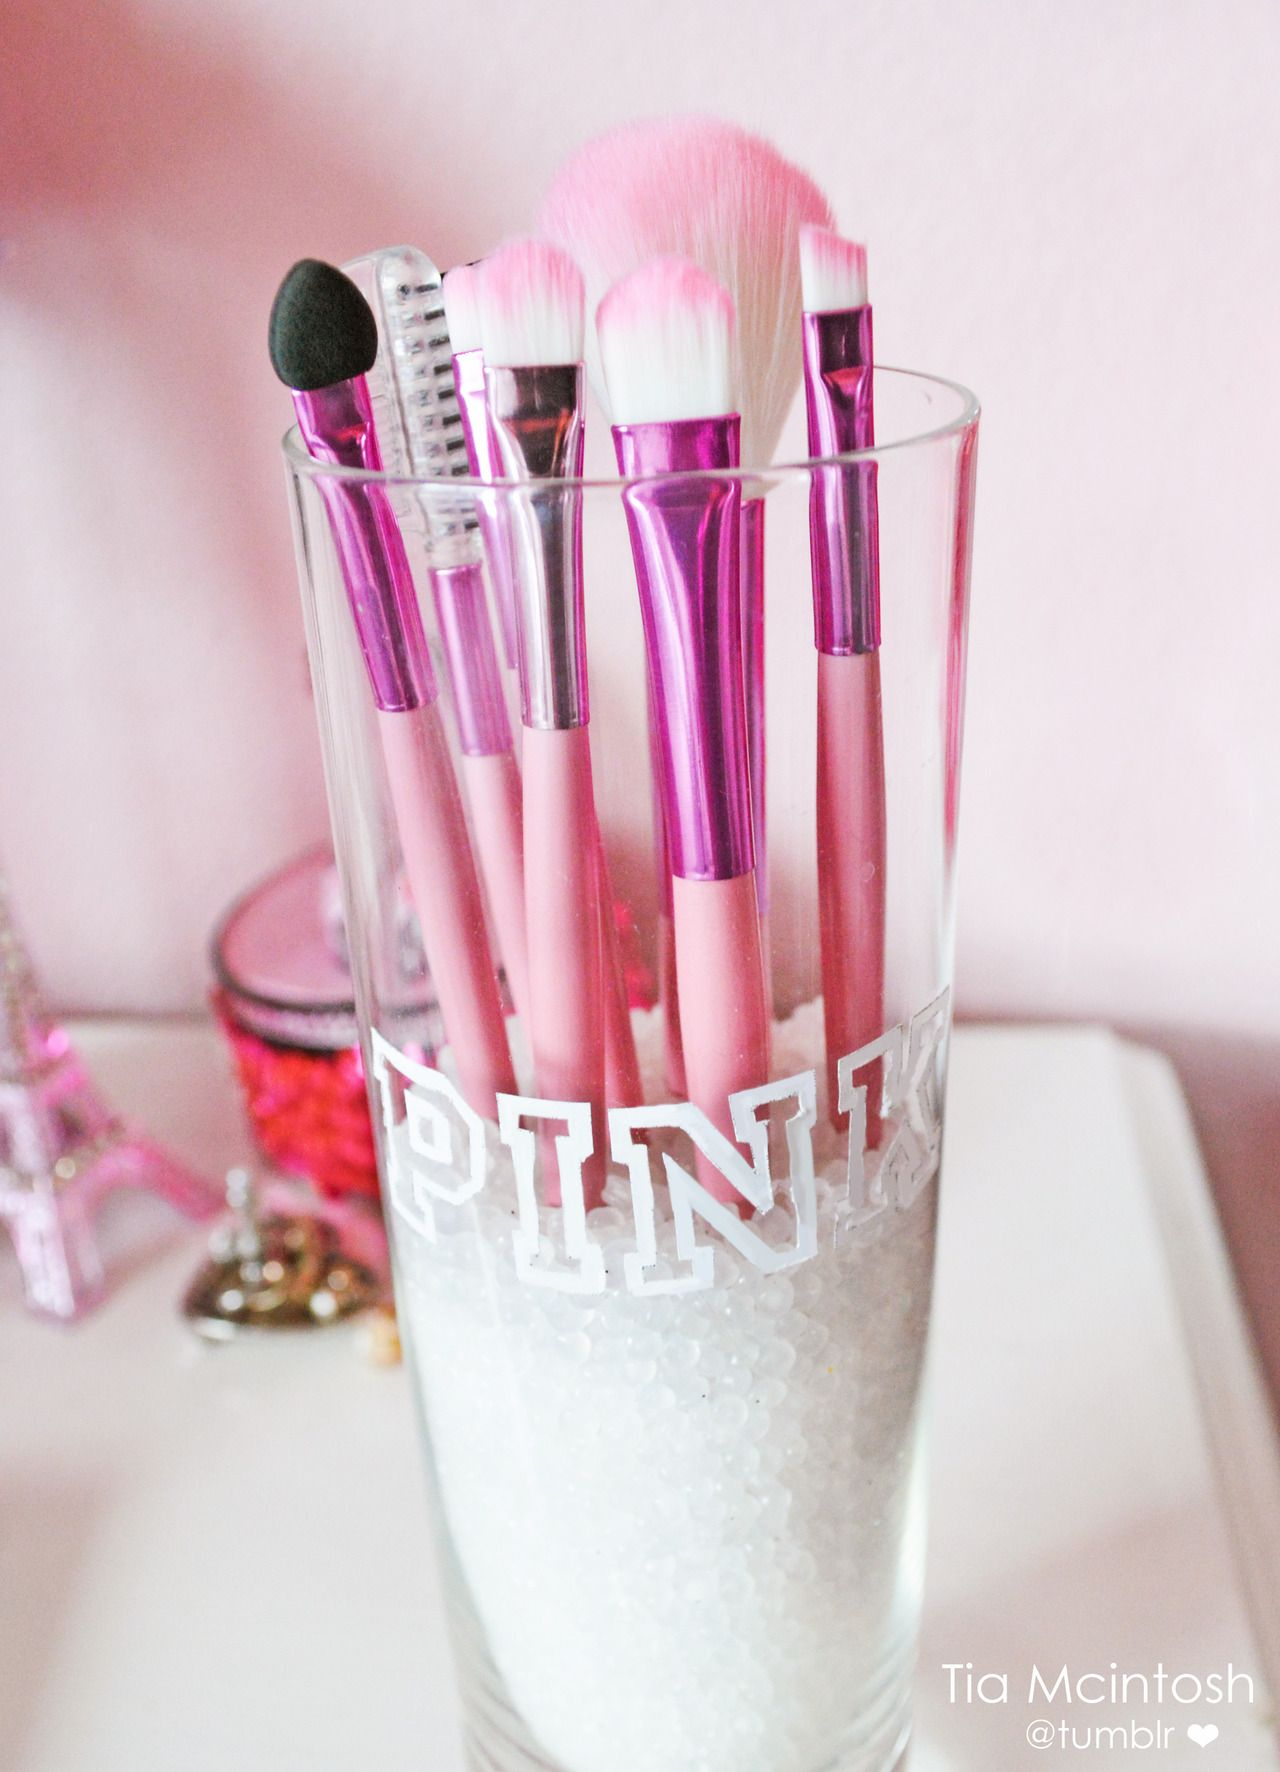 Love the pink makeup brushes you can never have too much